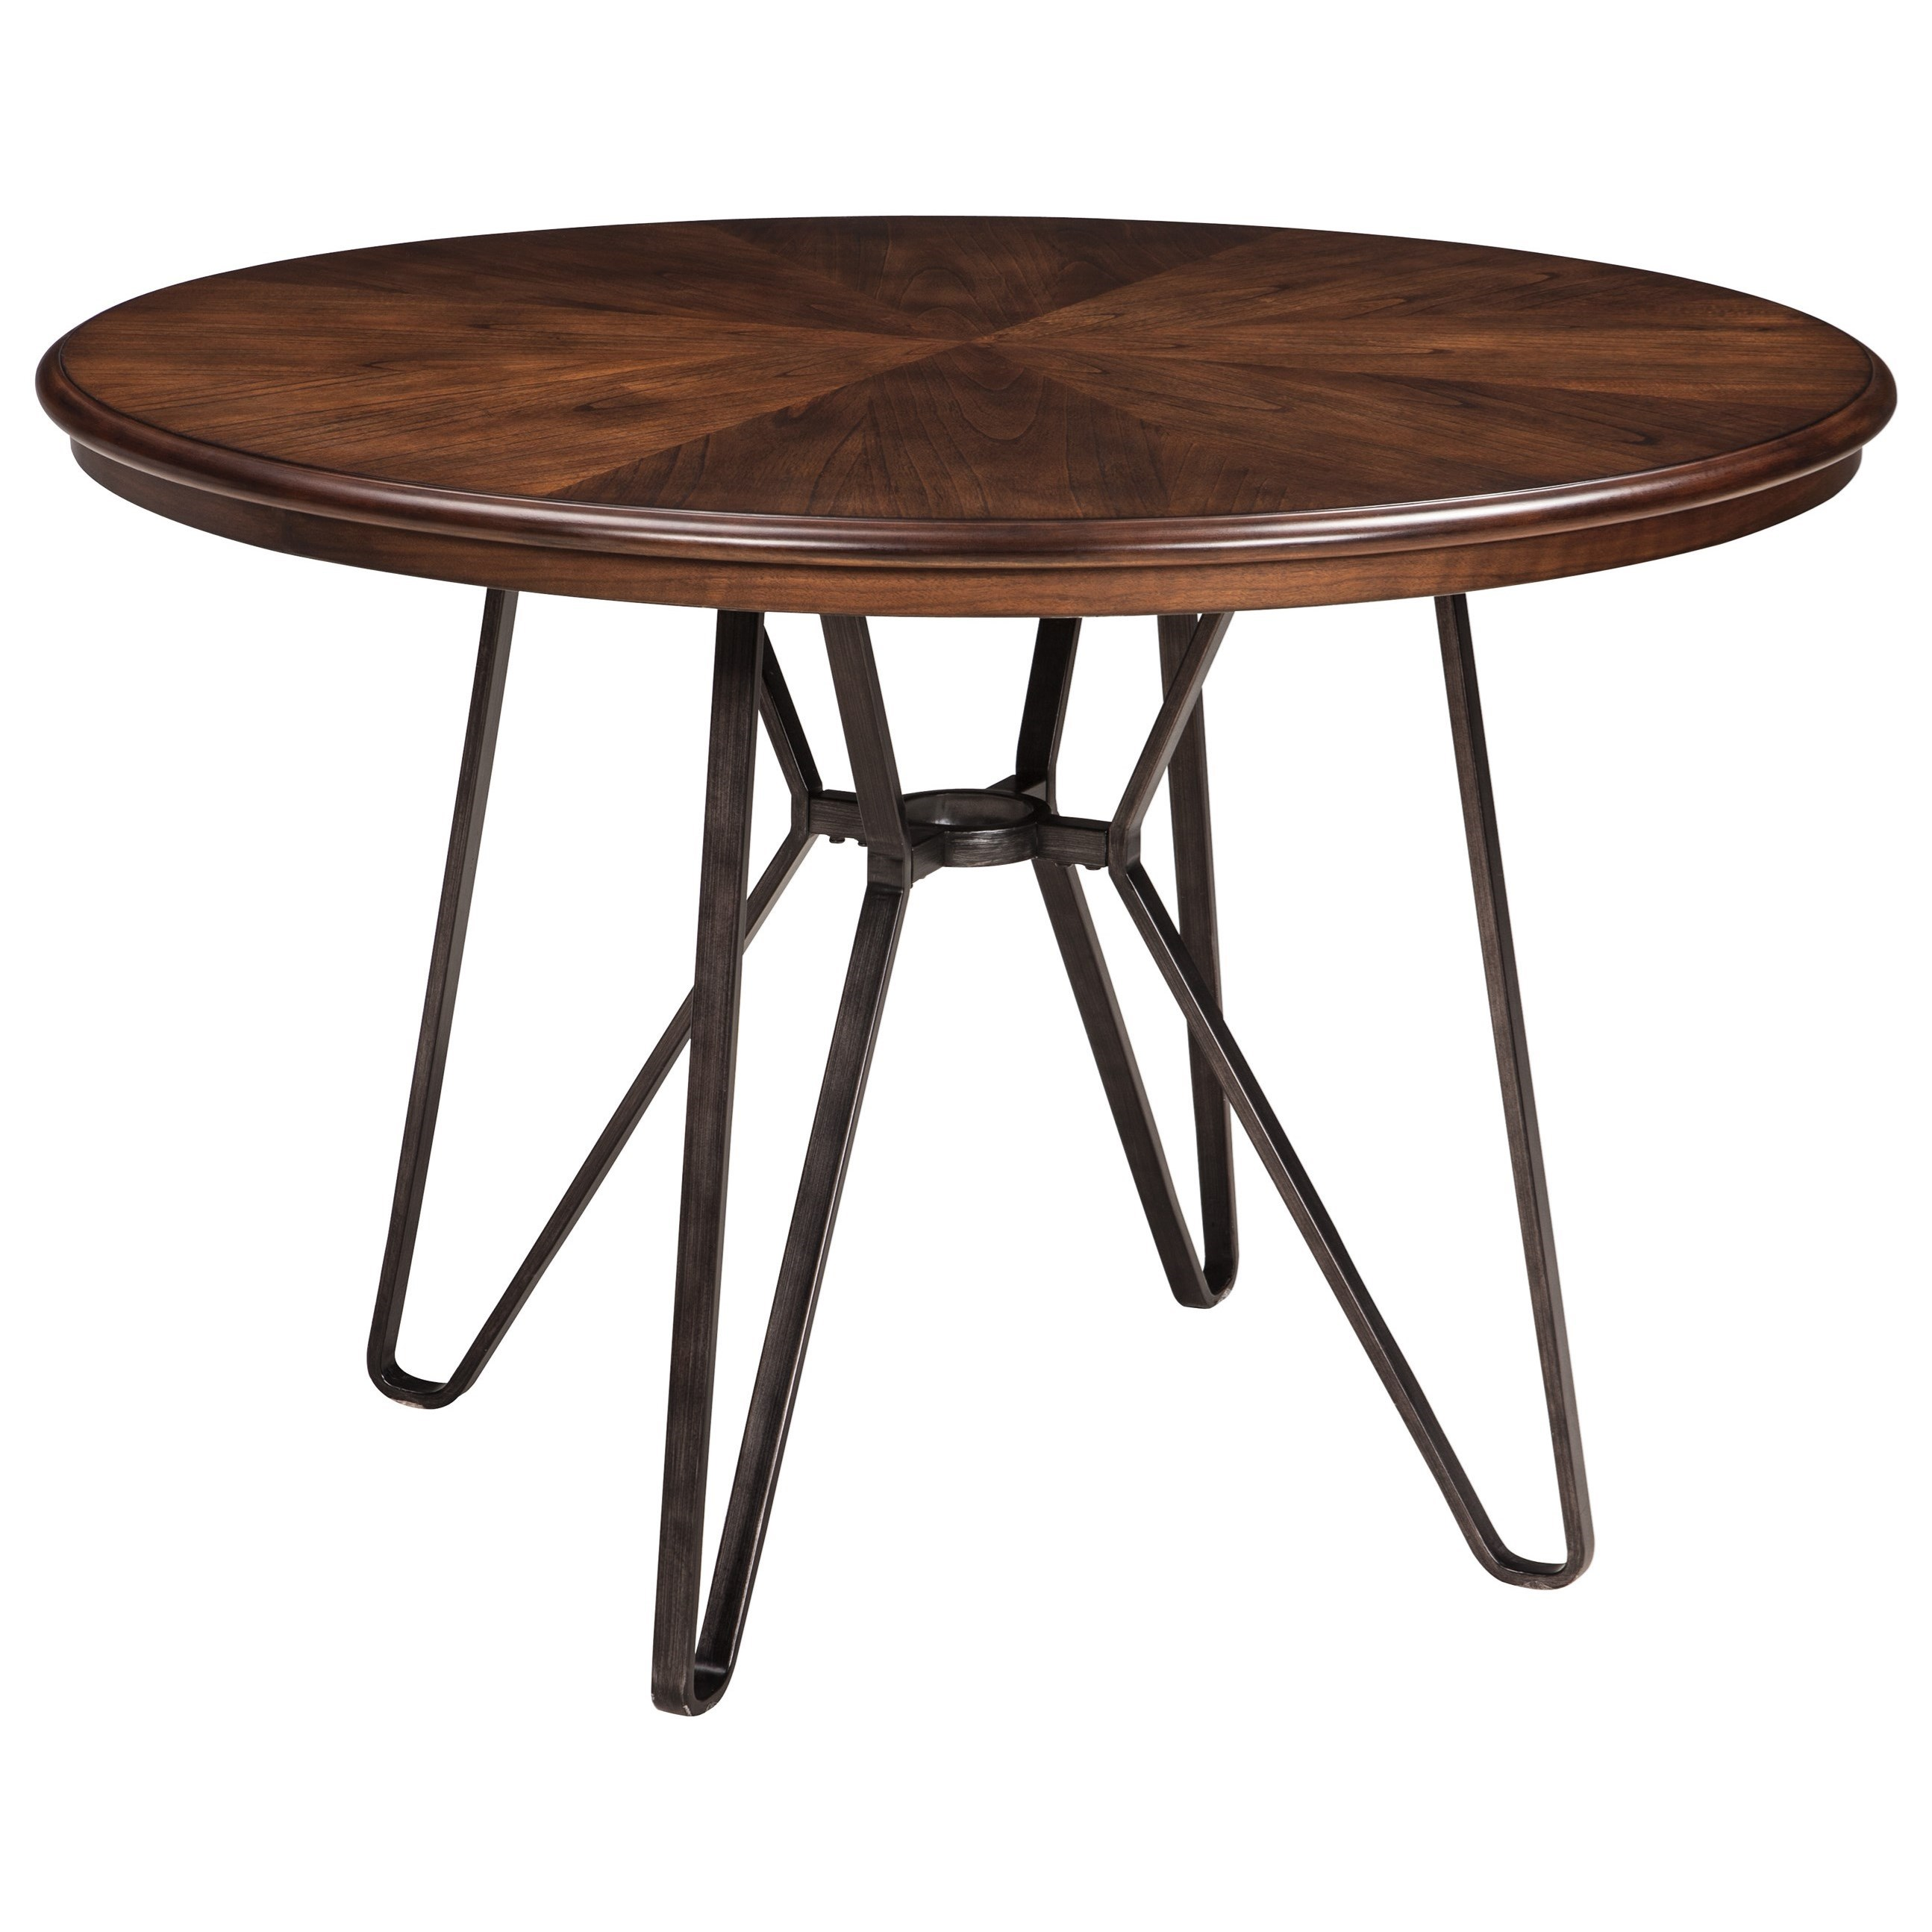 Round Wood Hairpin Coffee Table: Round Dining Room Table With Metal Hairpin Legs By